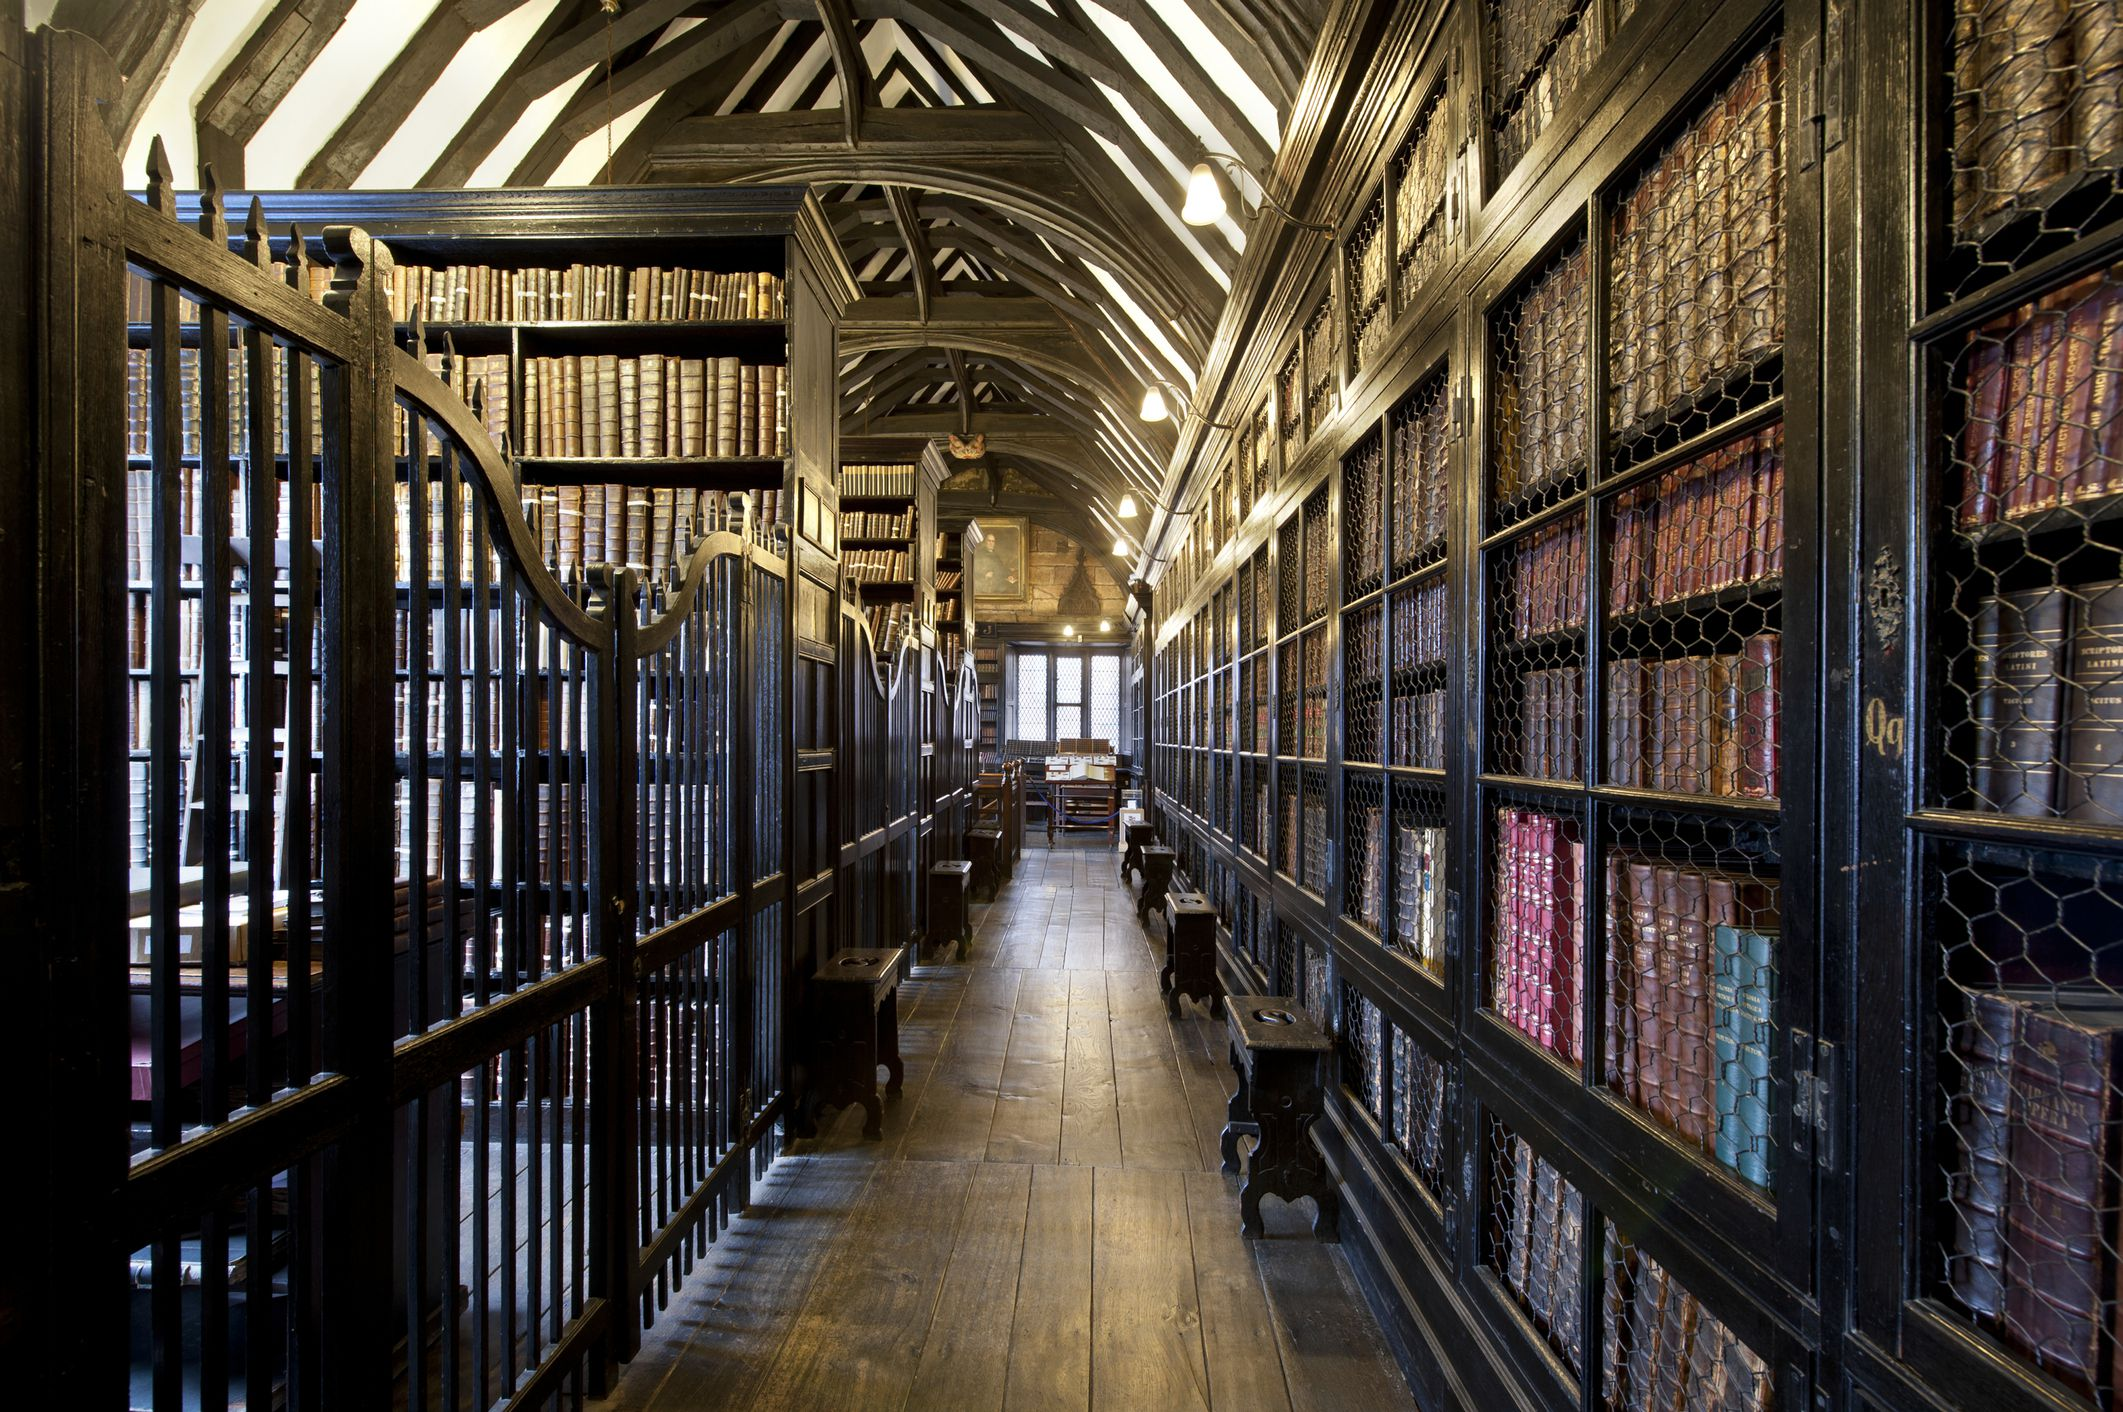 An internal view of Chetham's Library in Manchester.